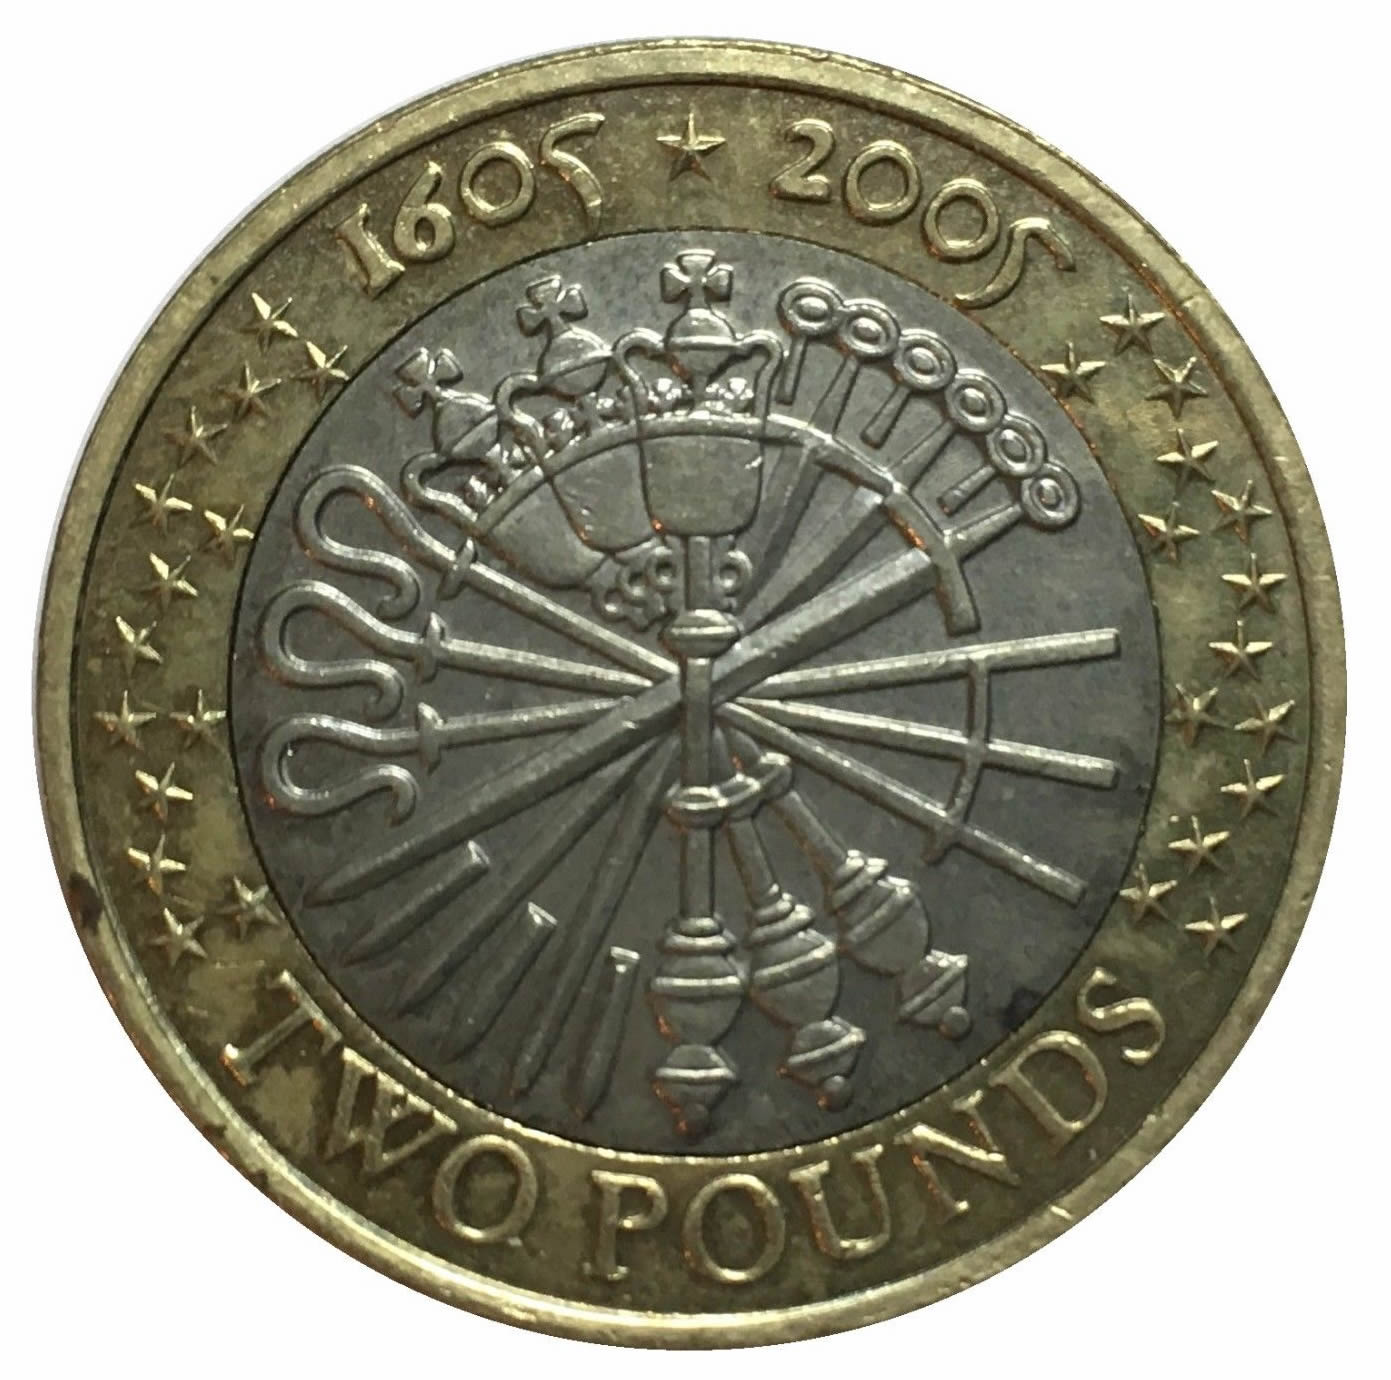 2005 two pound coin